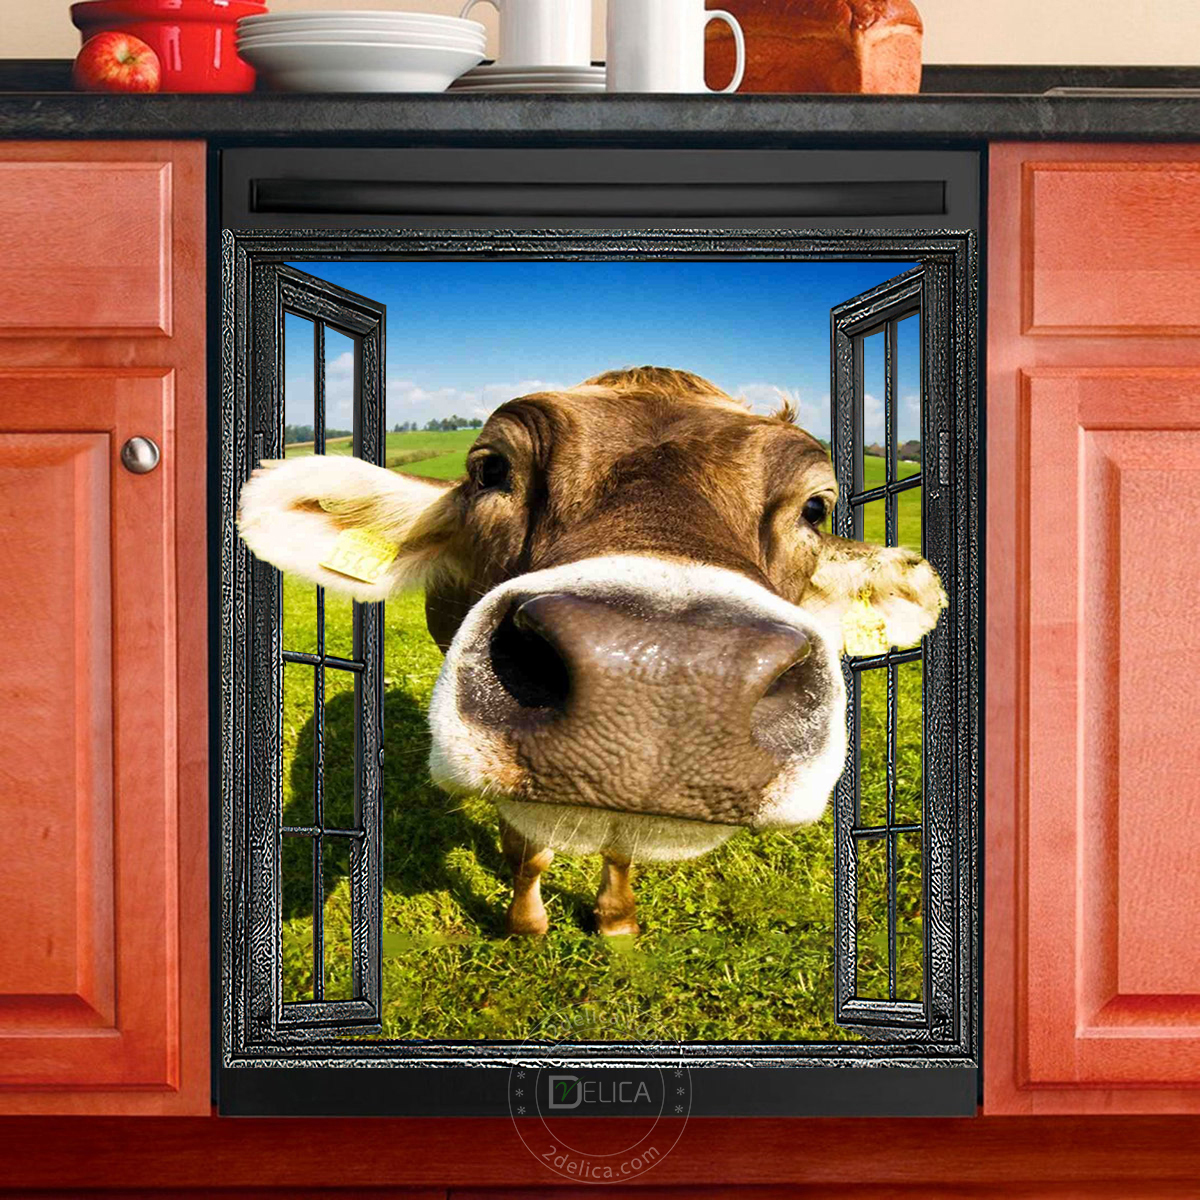 Dishwasher Cover - Funny Cow 08